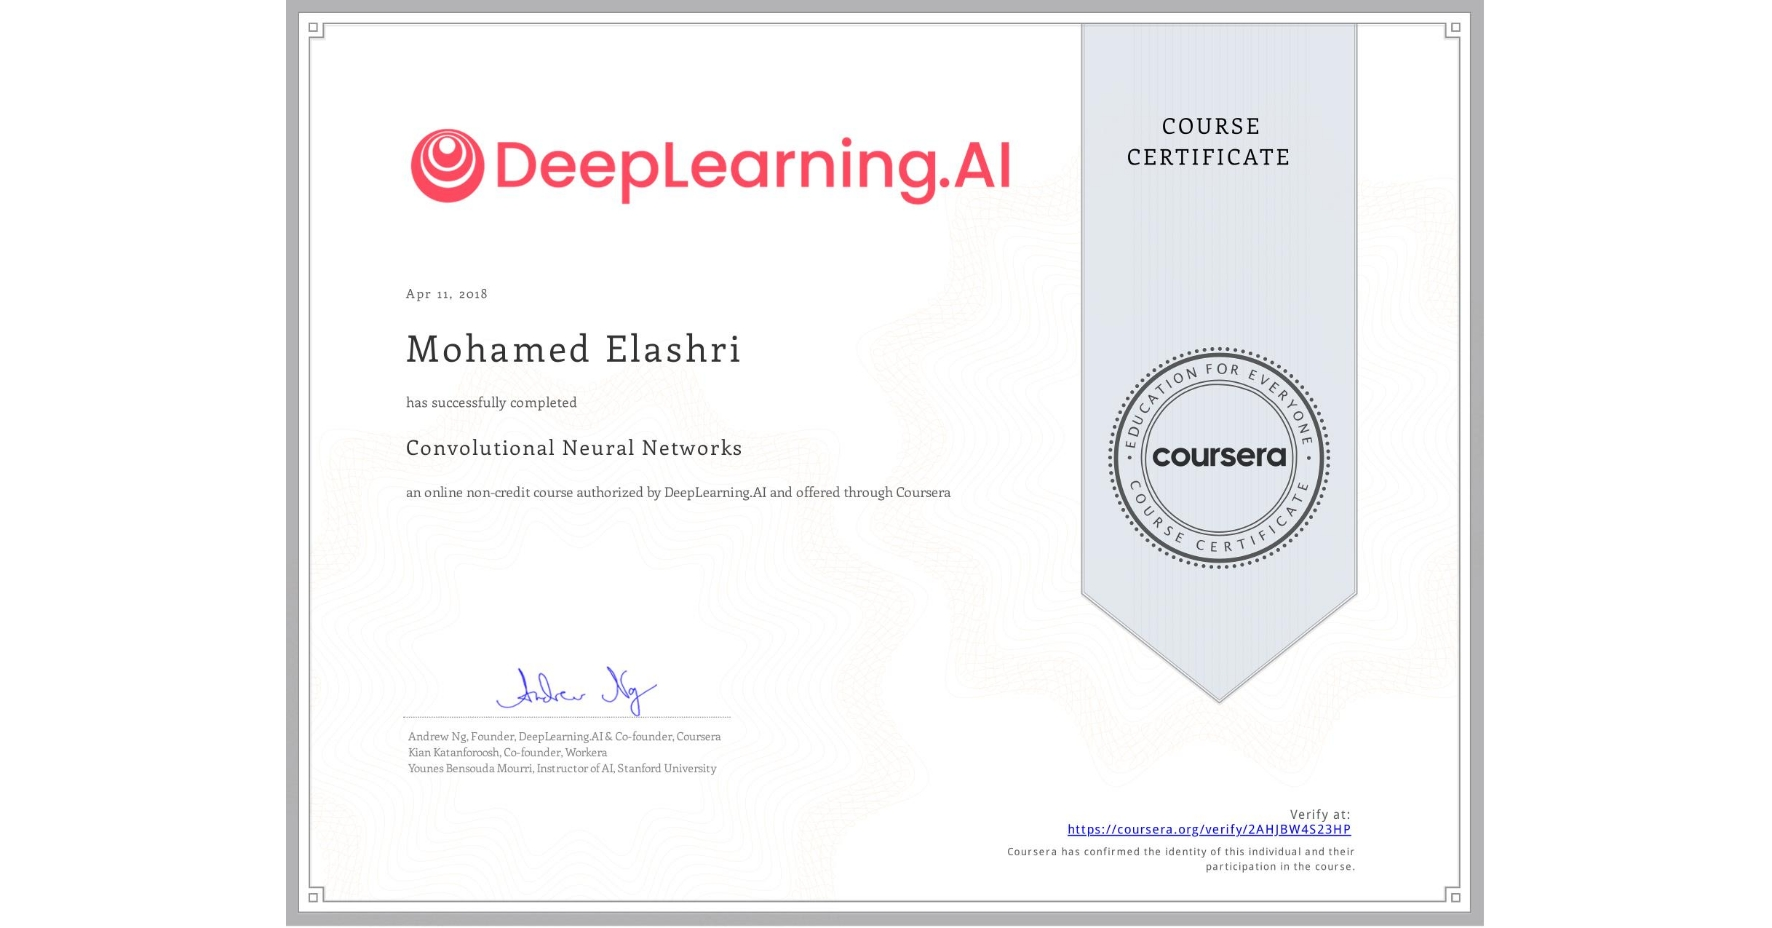 View certificate for Mohamed Elashri, Convolutional Neural Networks, an online non-credit course authorized by DeepLearning.AI and offered through Coursera